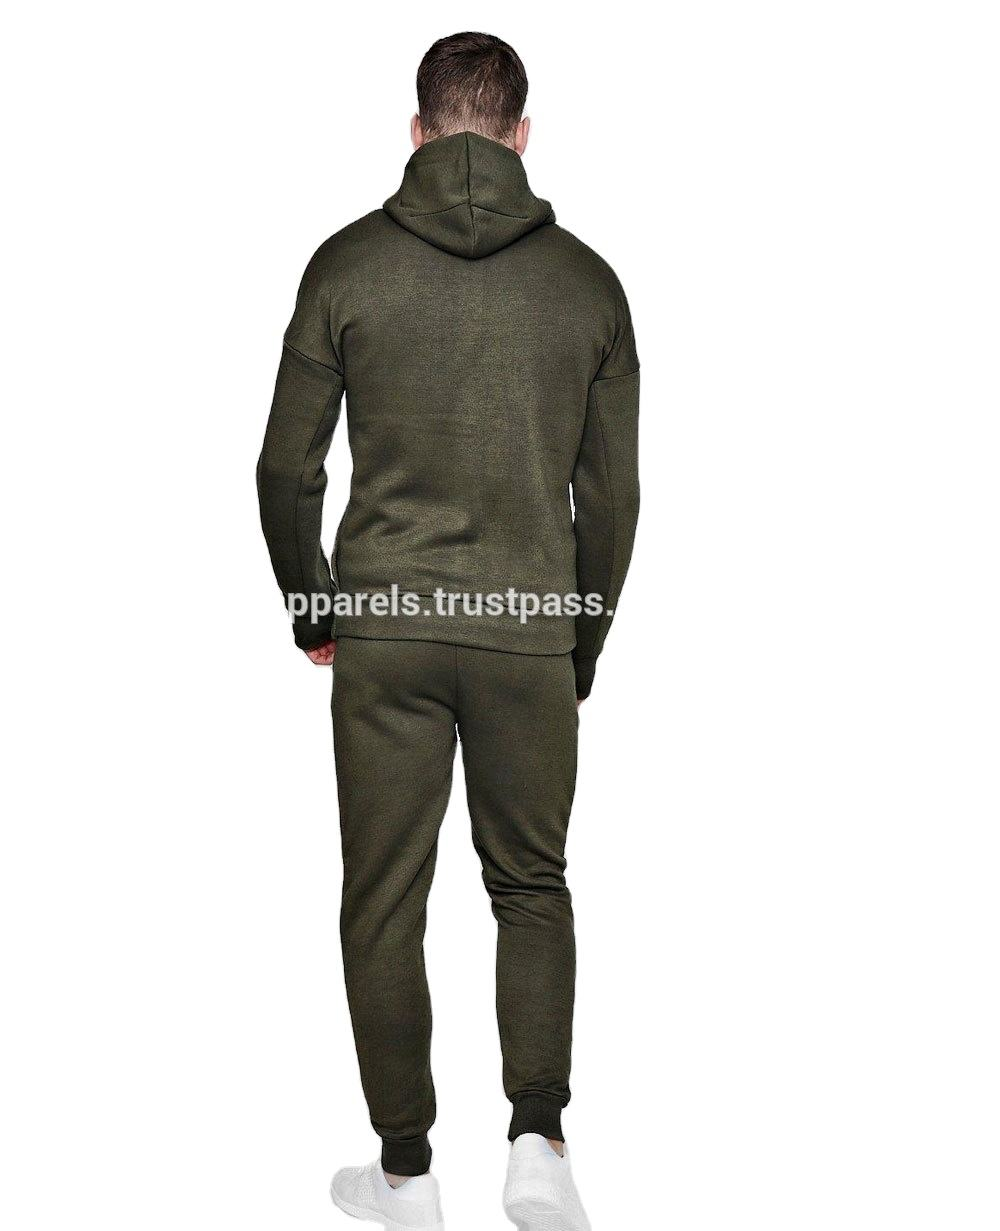 Oem Bulk Wholesale cheap custom,Jogging Custom 100% Polyester Windproof Mens Tracksuit/ Sports Track Suit